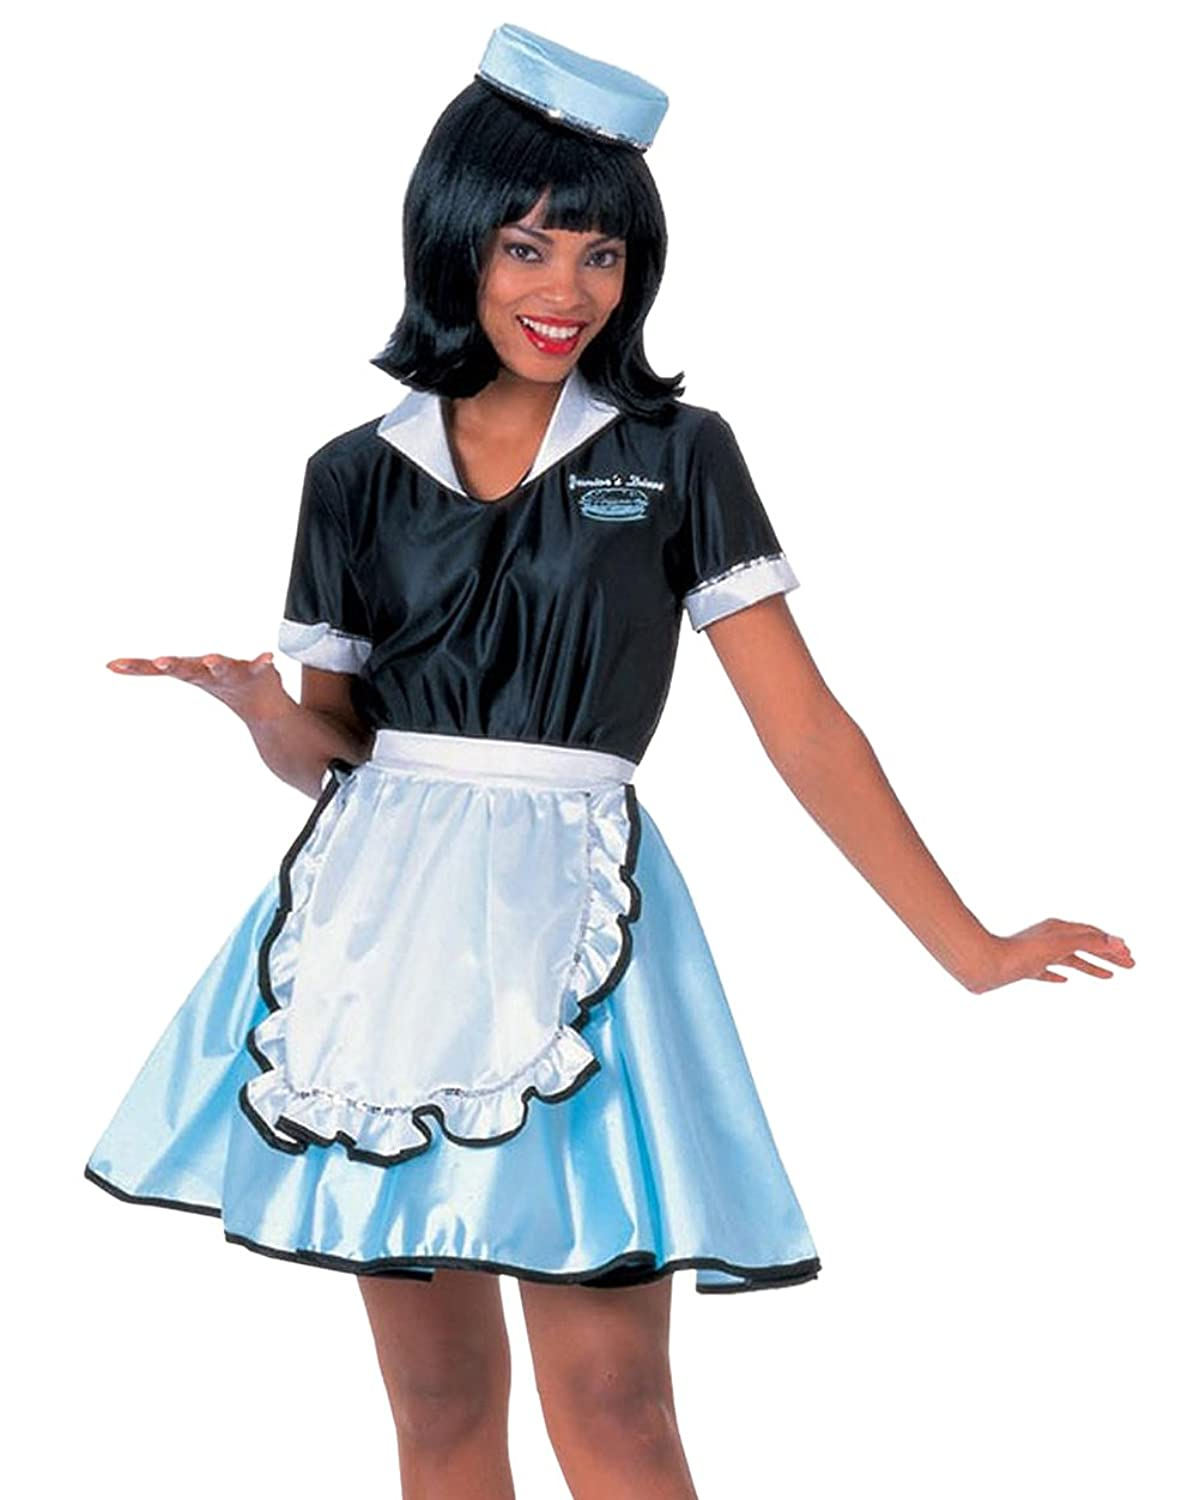 Amazon Car Hop Sock Costume Poodle Skirt 1950s Retro Vintage Womens Theatrical Clothing